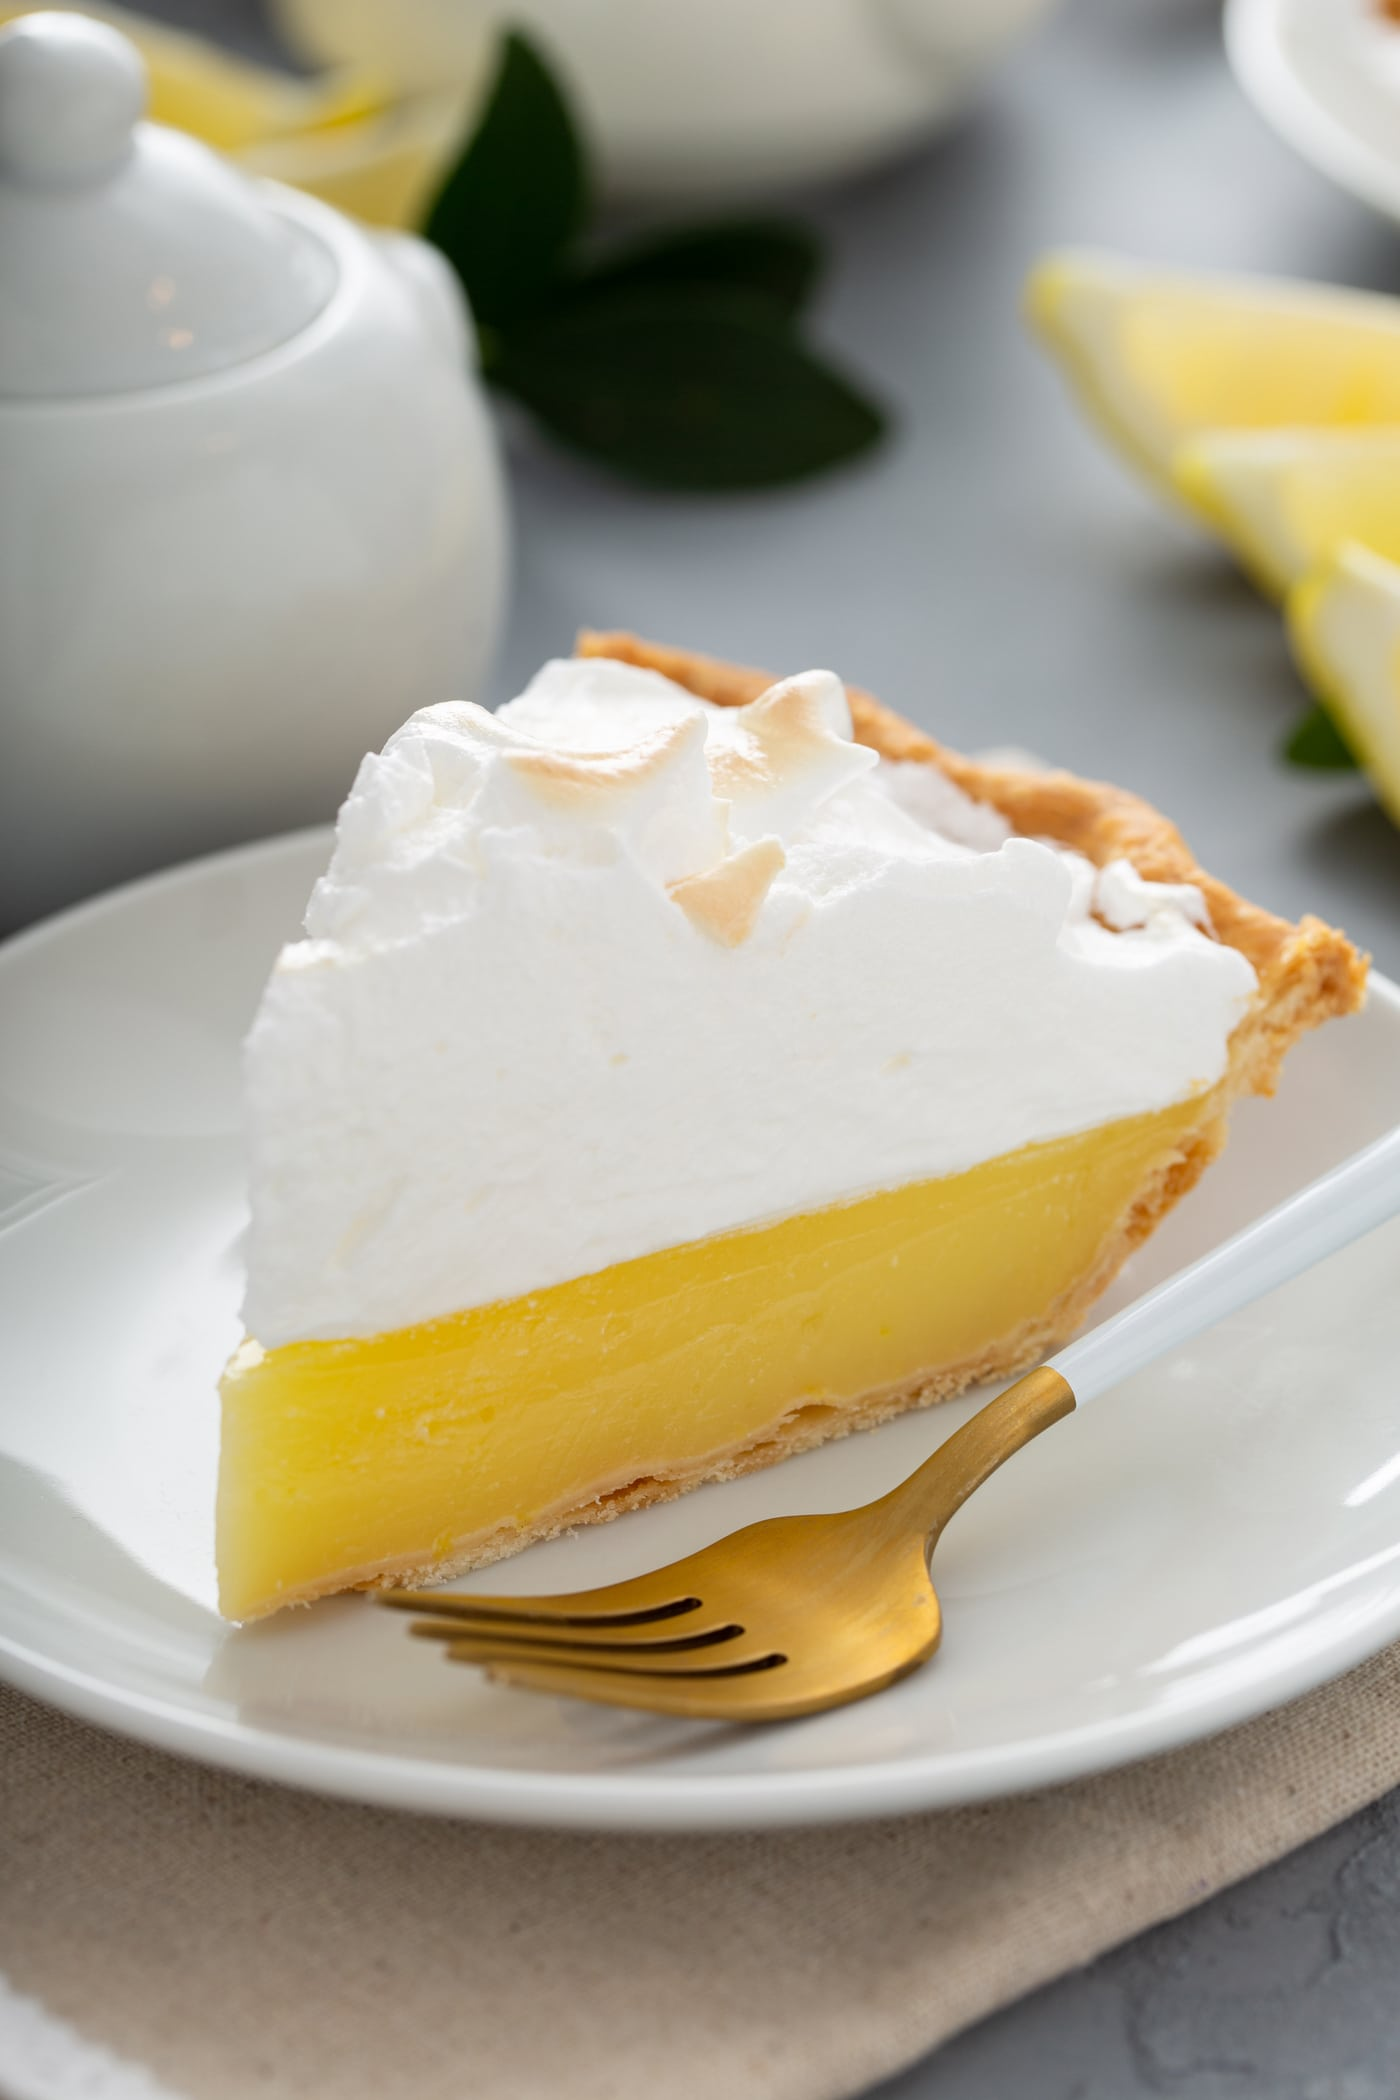 A slice of lemon meringue pie on a white dessert plate. A fork is next to the slice of pie. The filling is bright yellow and the meringue is lightly toasted.